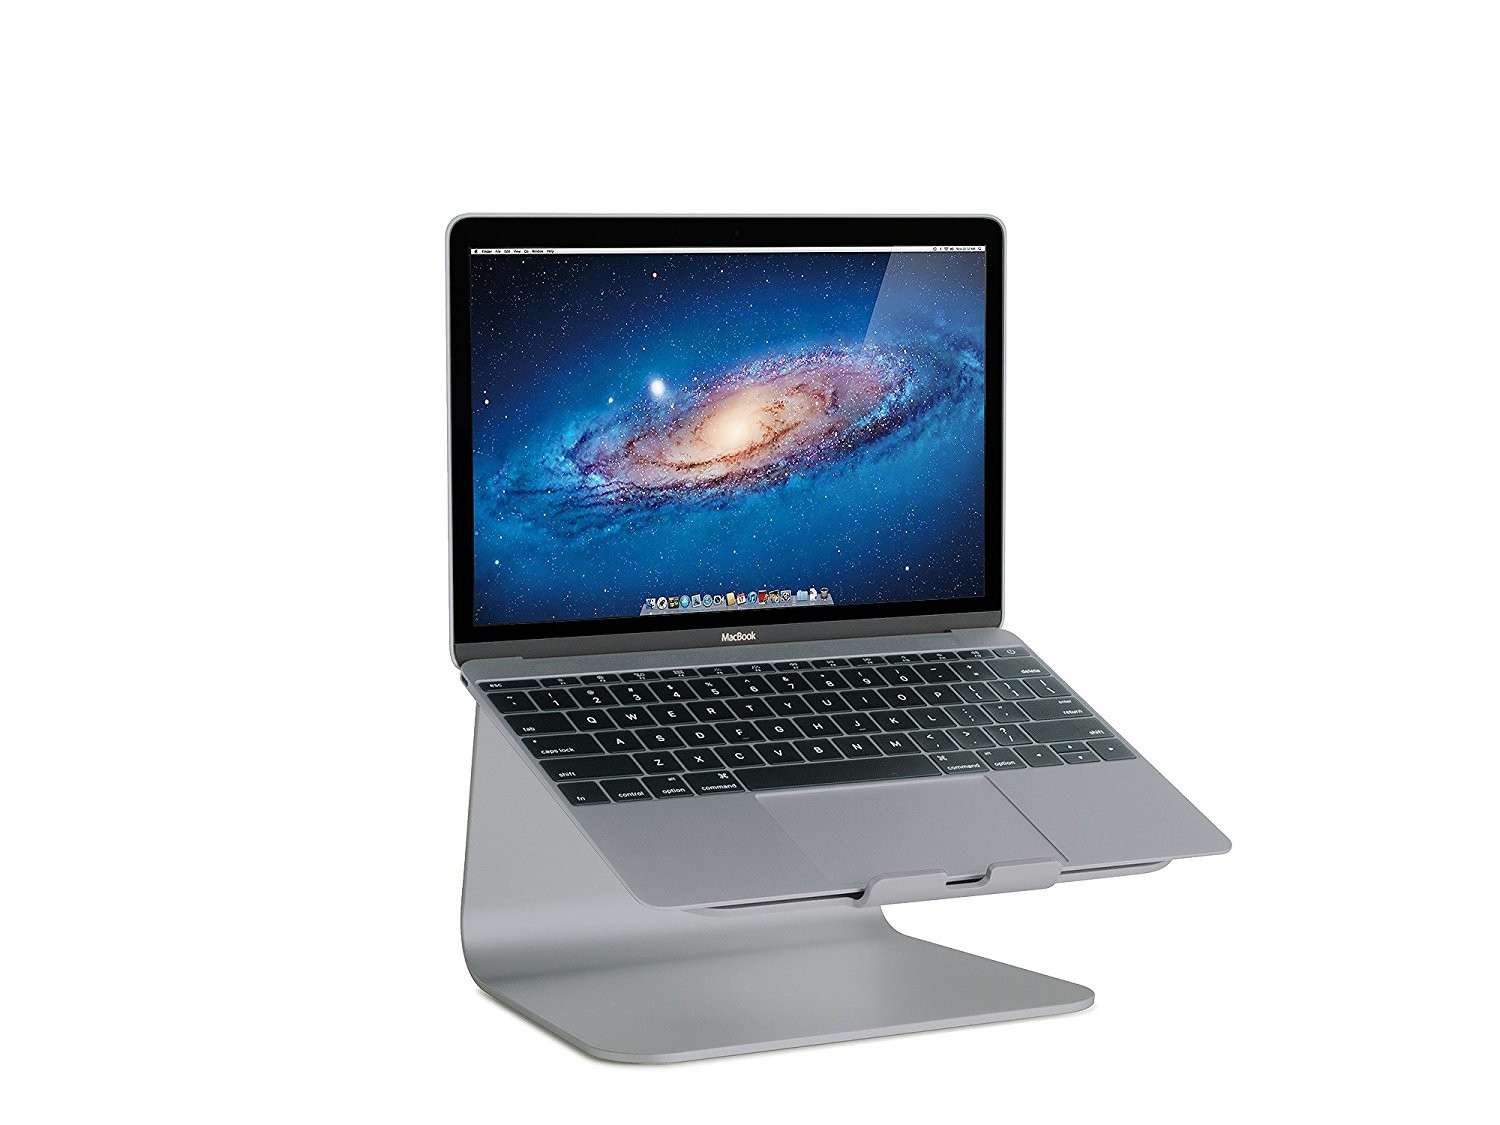 Rain Design mStand Aluminium Laptop Stand for Macbooks - Space Grey, RAUN10072